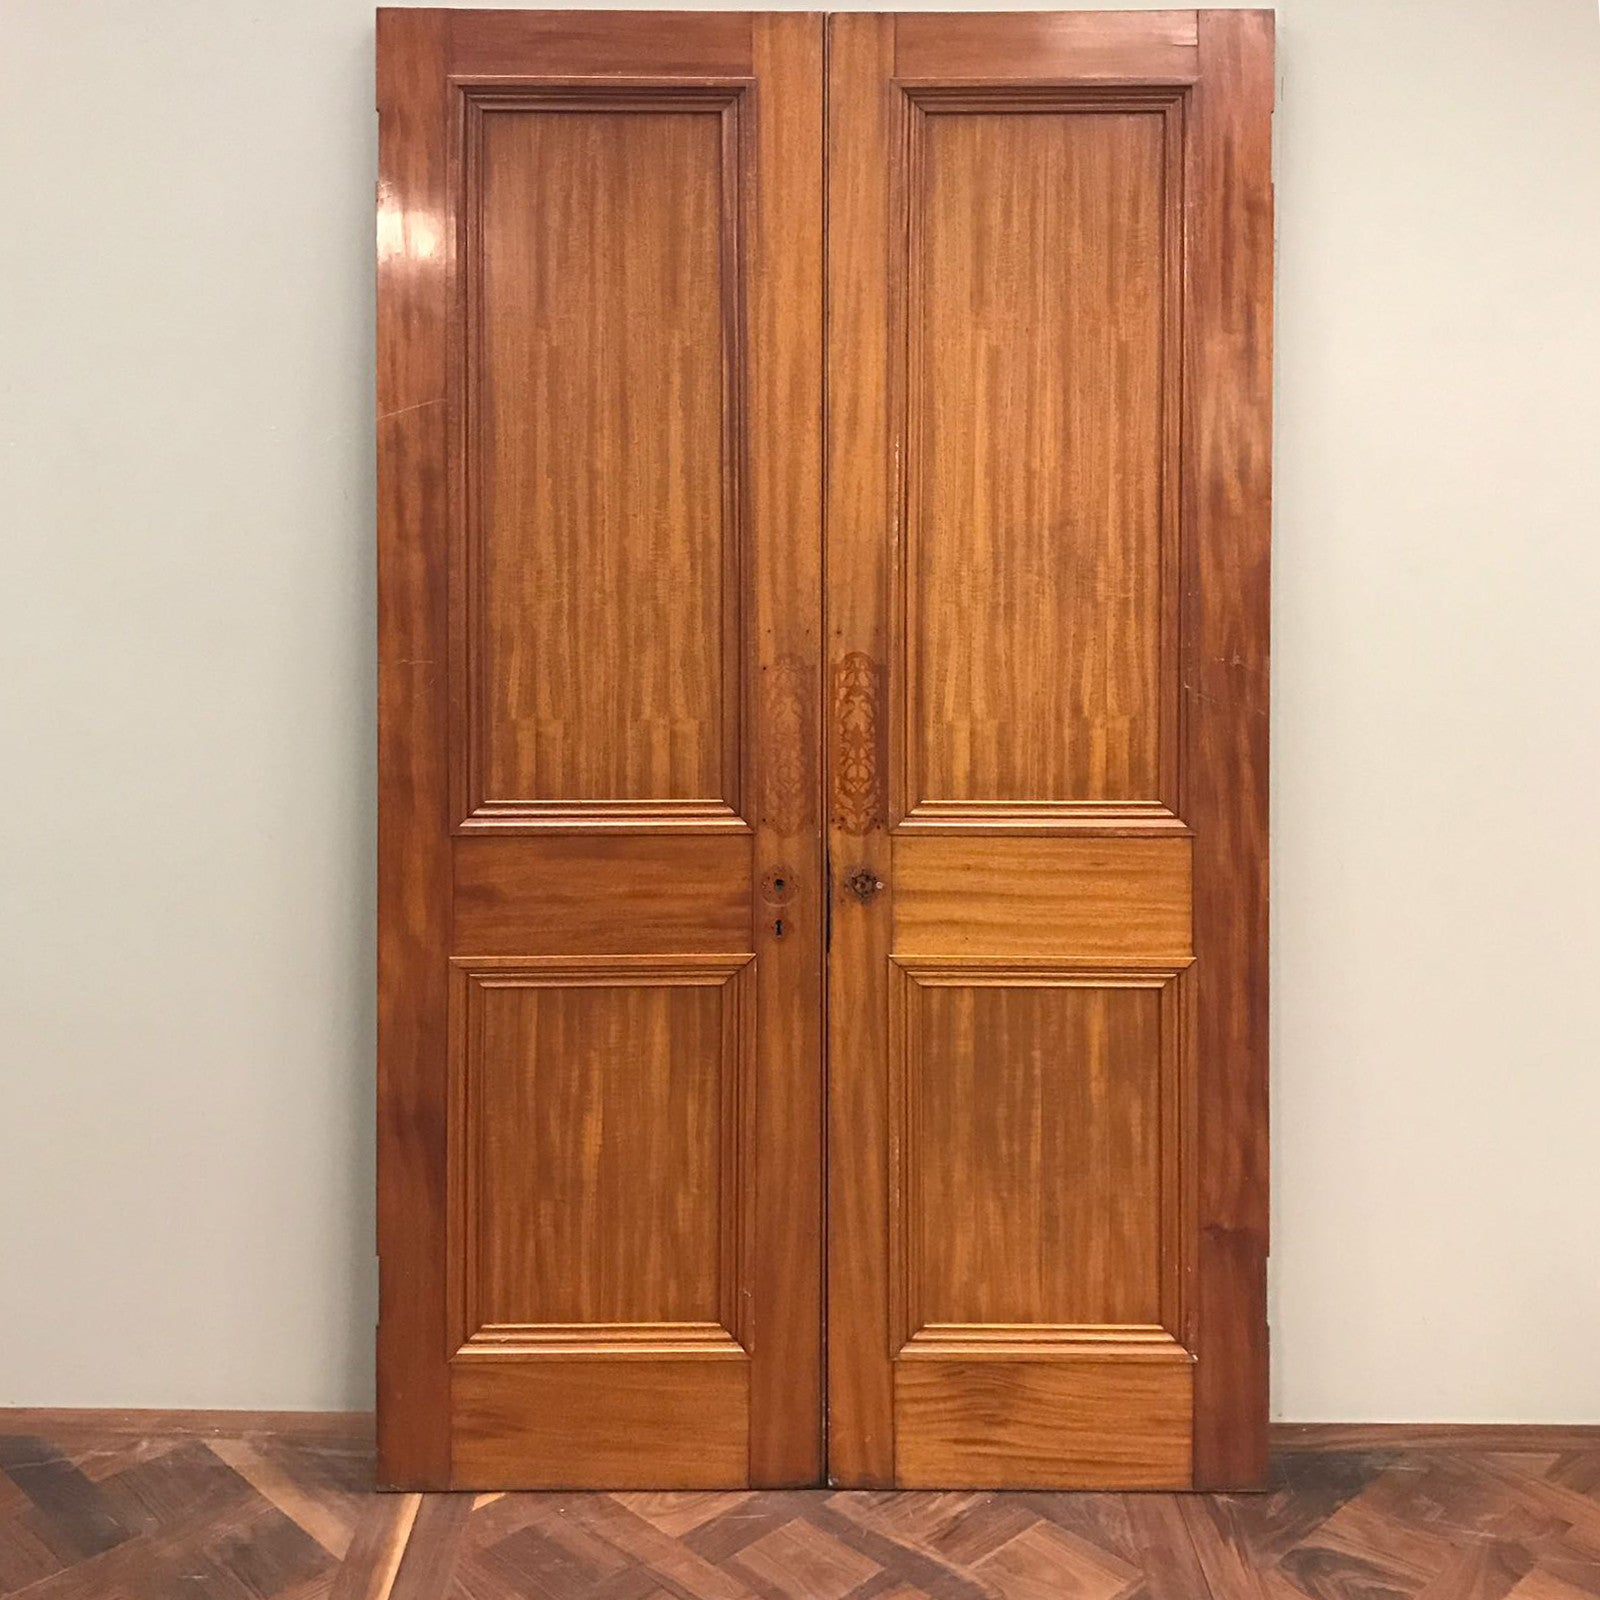 Antique Victorian Mahogany Double Doors - architectural-forum